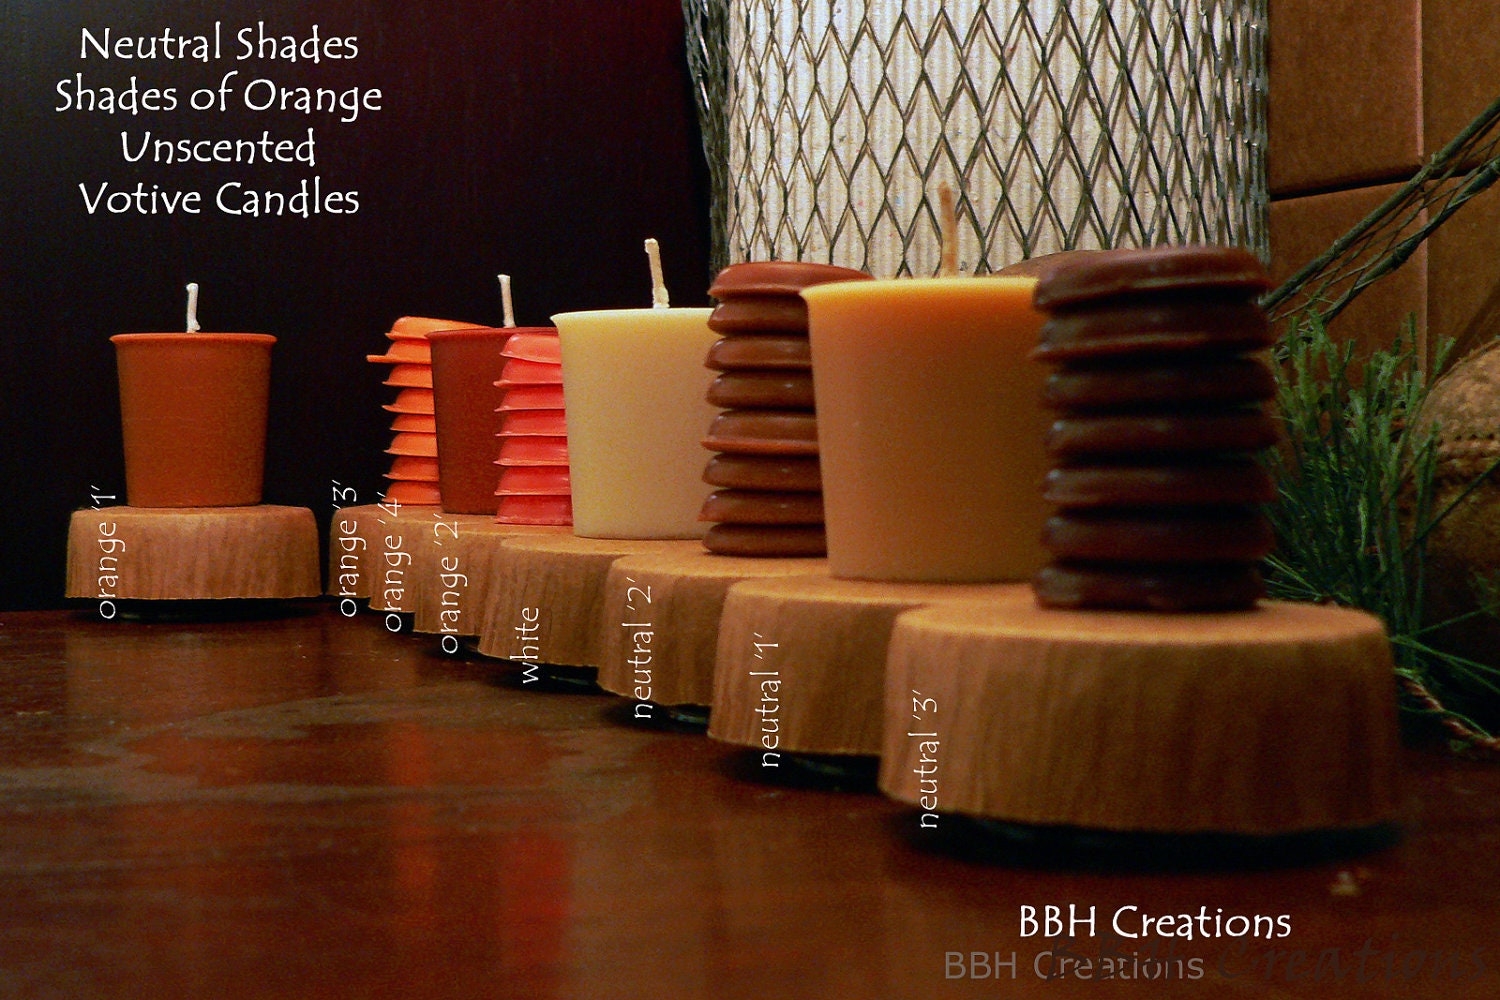 cream . chocolate . orange . eight pack of same color unscented soy votive candles . add . fragrance free..  ambiance to any table decor . - BBHCreations